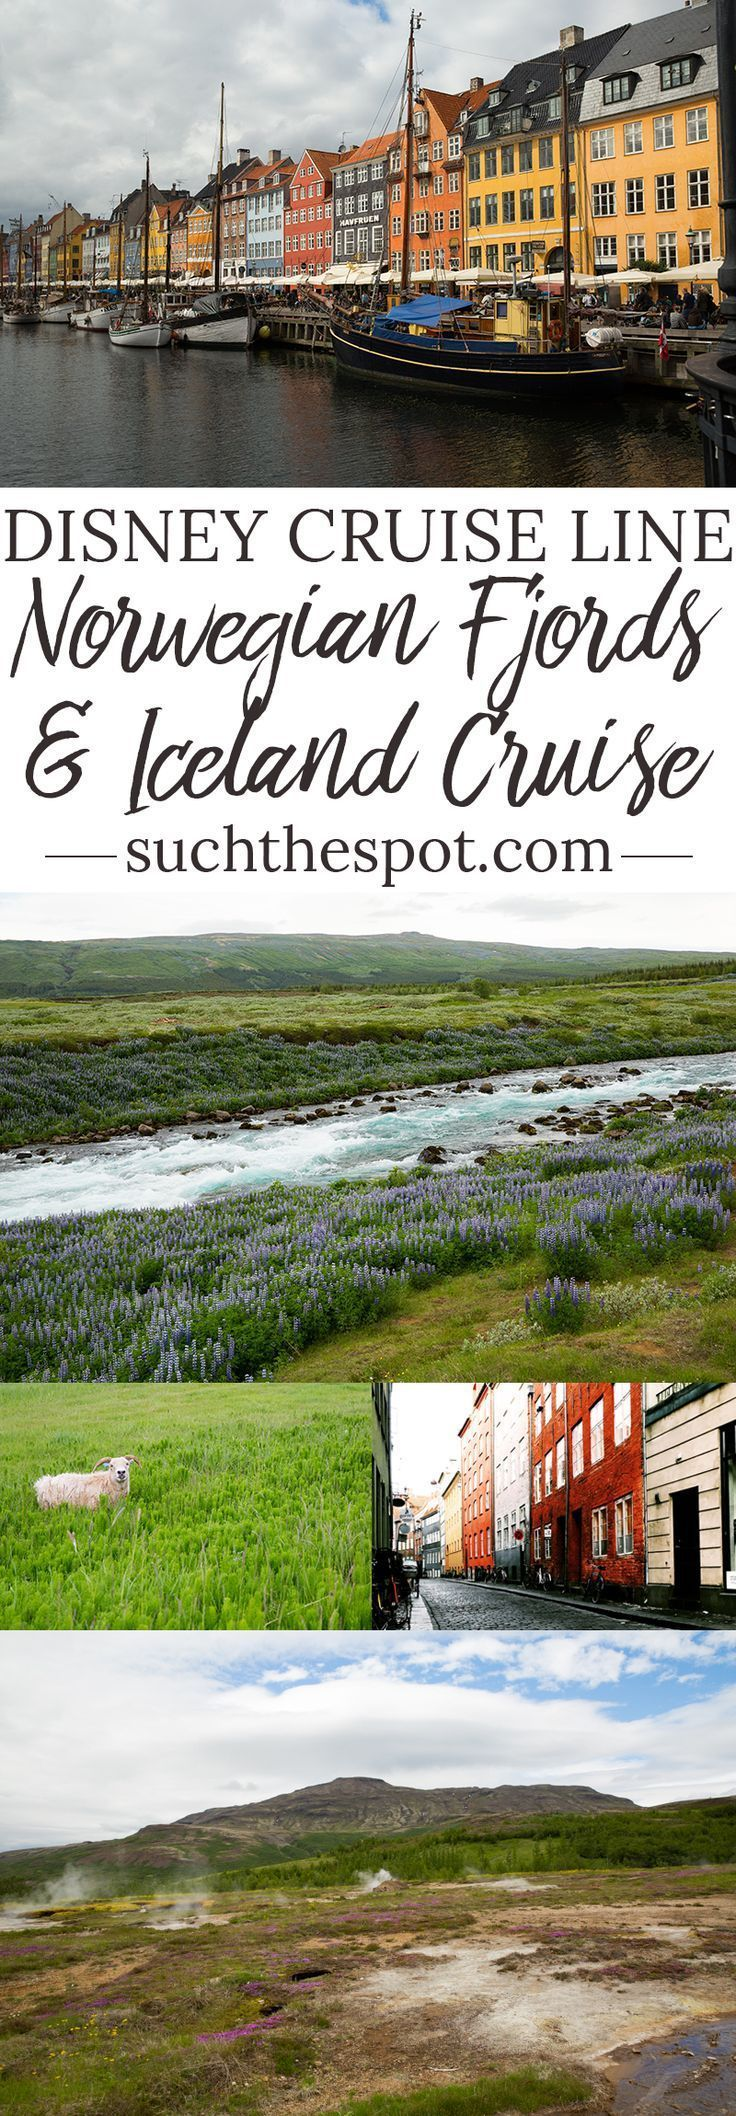 From strolling Nyhavn in Copenhagen to Norway's cobblestone streets to Iceland's geysers, our Norwegian Fjords and Iceland Cruise aboard the Disney Cruise Line was a bucket list trip for sure! This trip report is full of beautiful pictures and all the det